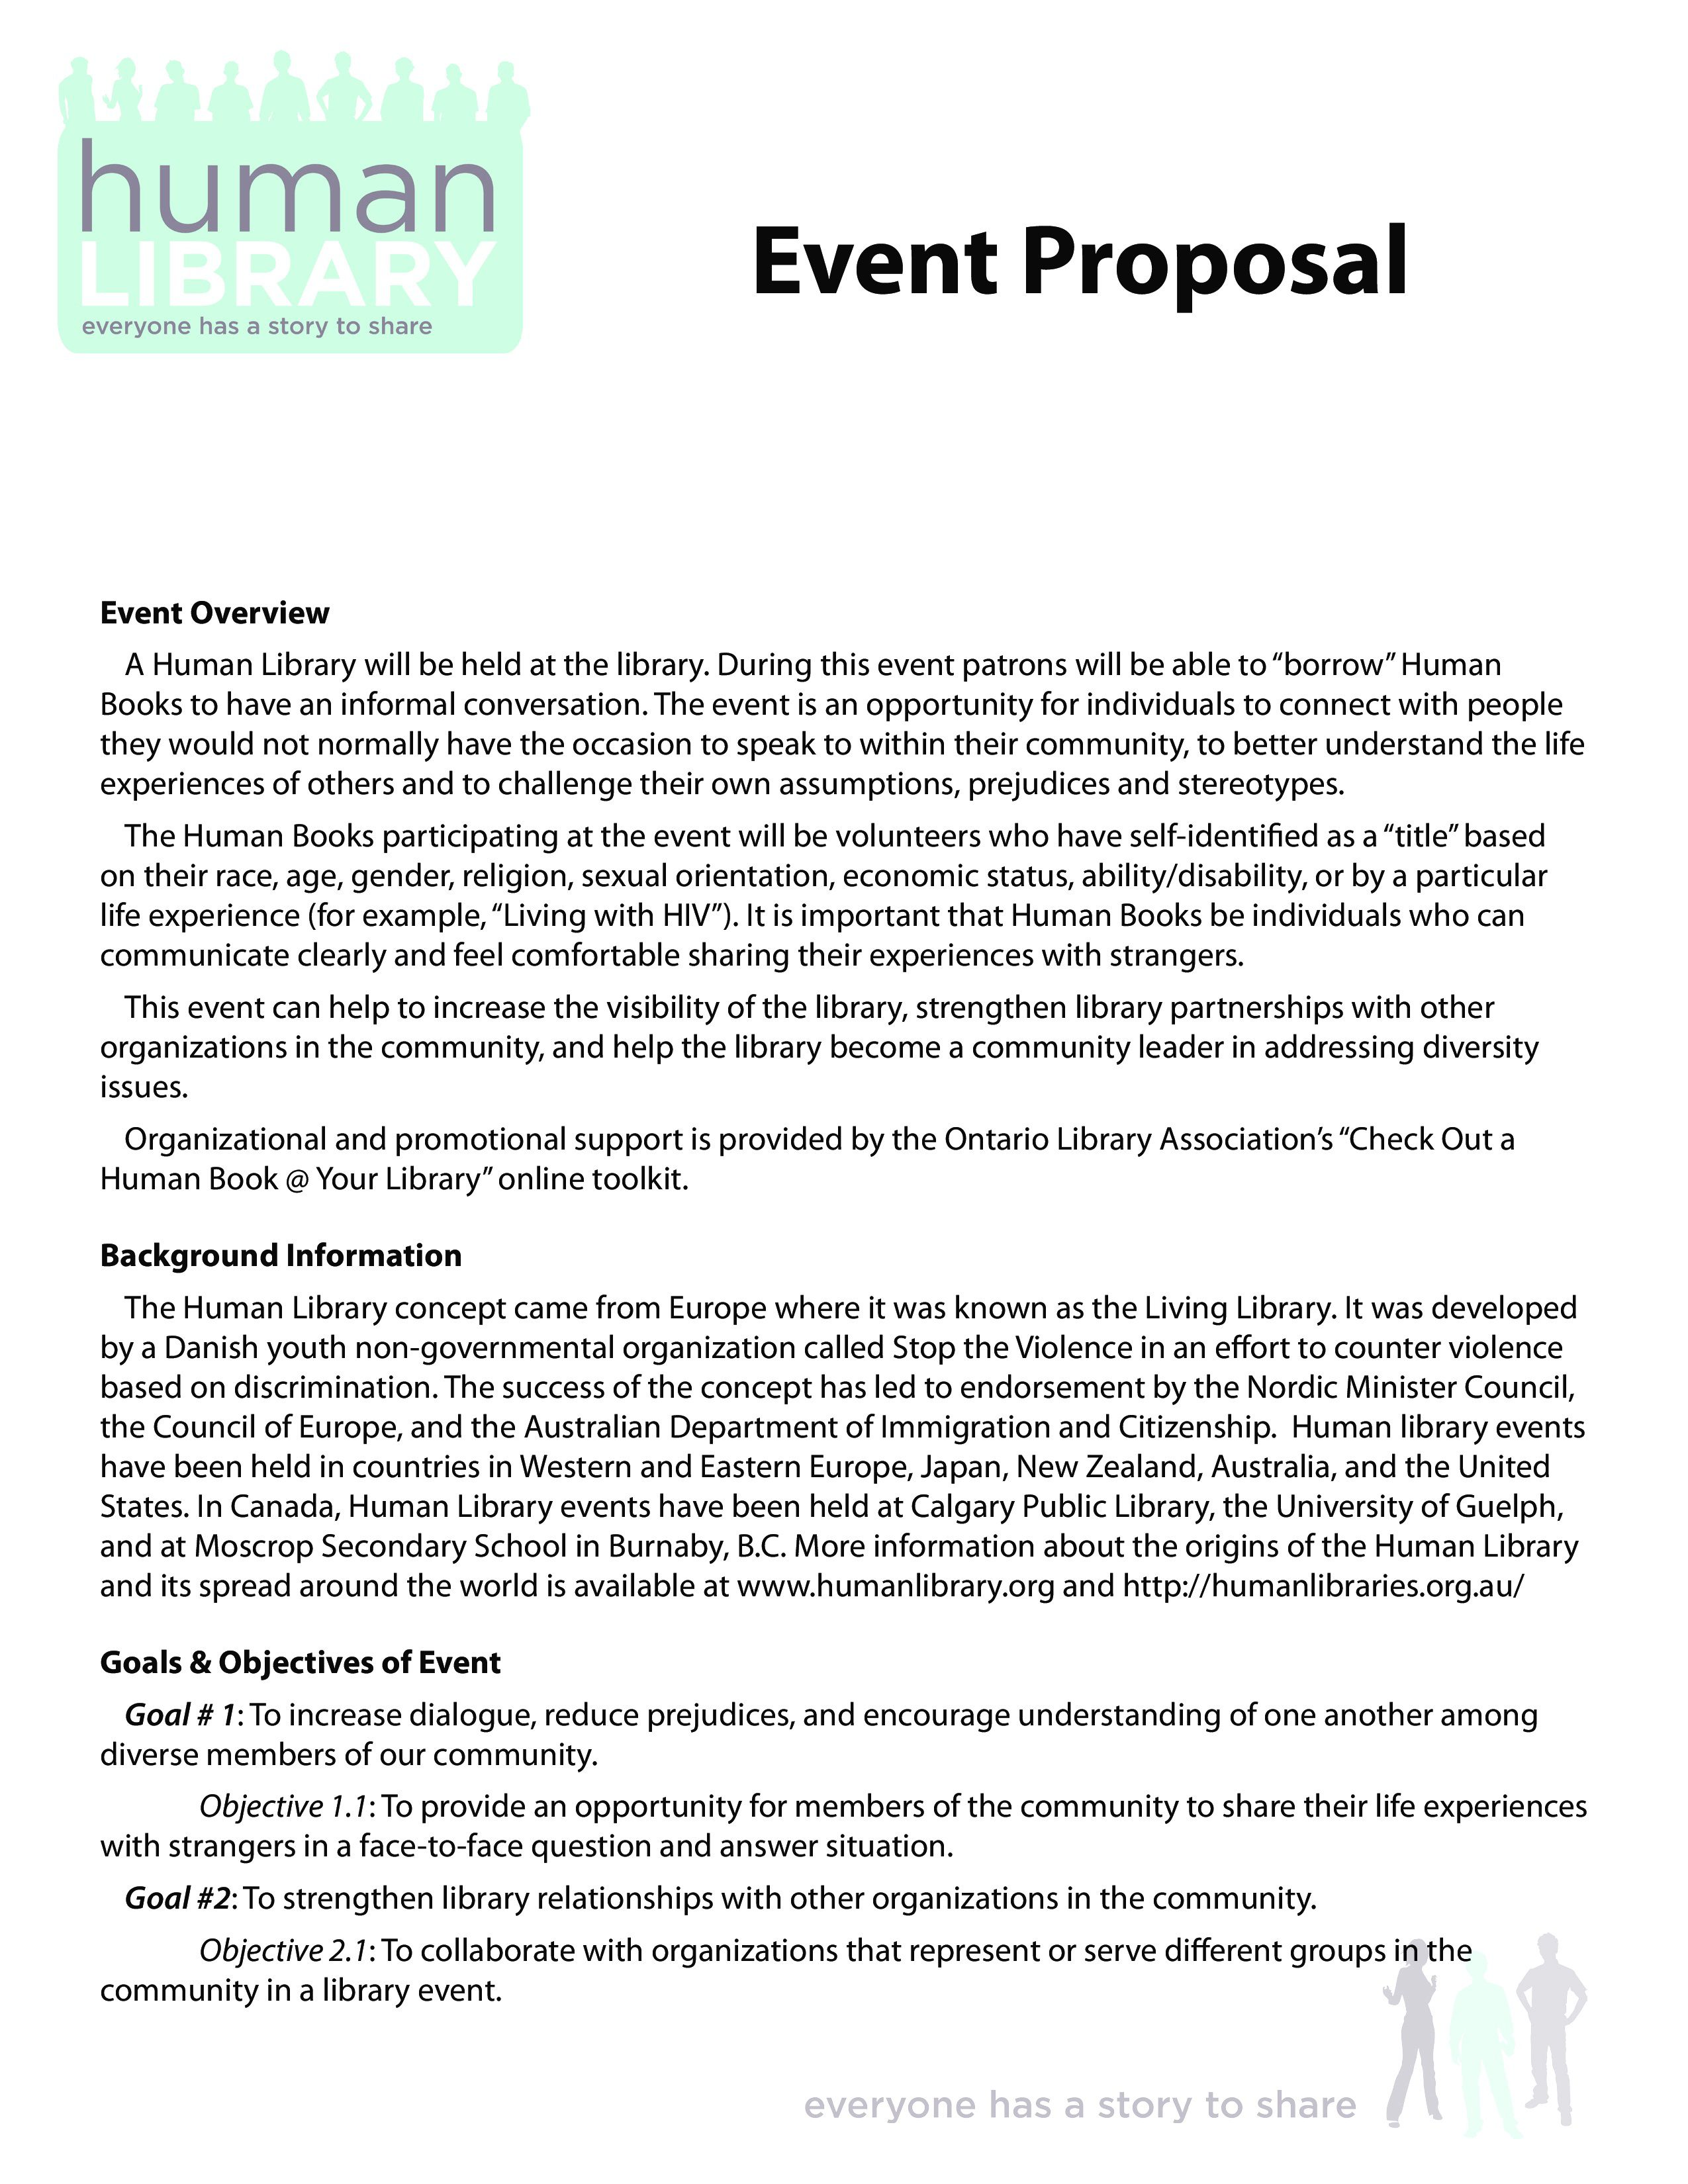 004 Fascinating Event Sponsorship Proposal Template High Def  Free Ppt Music PdfFull